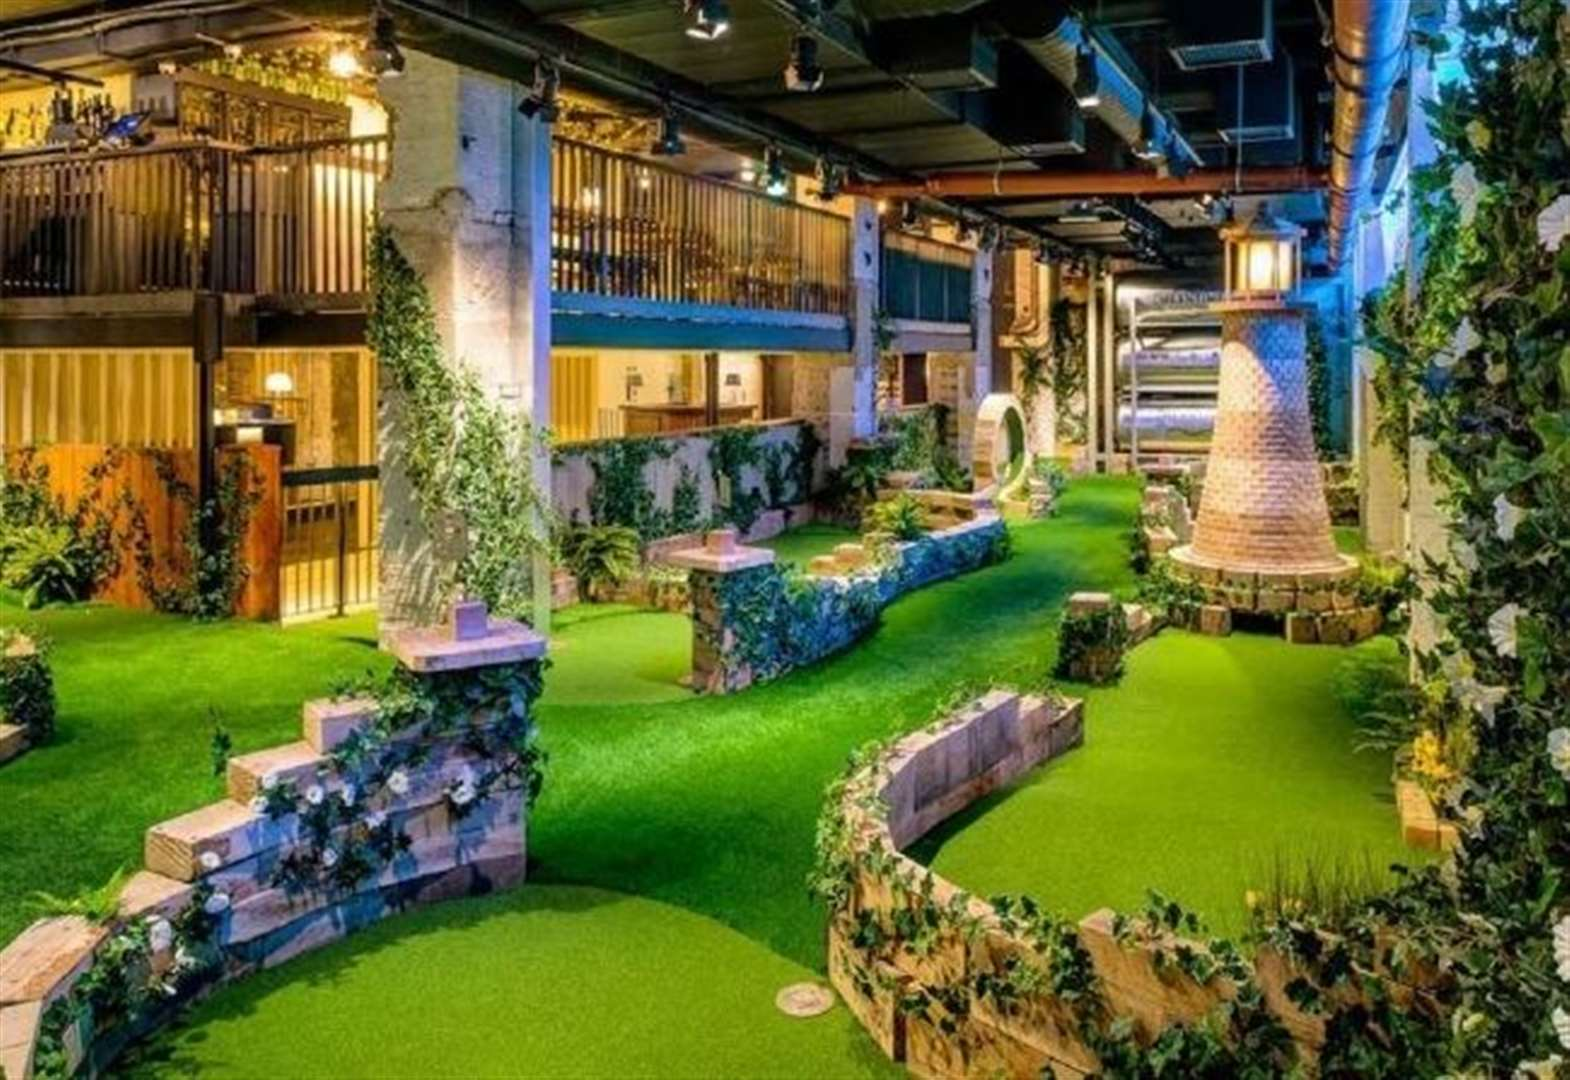 Plans for rooftop restaurant with crazy golf